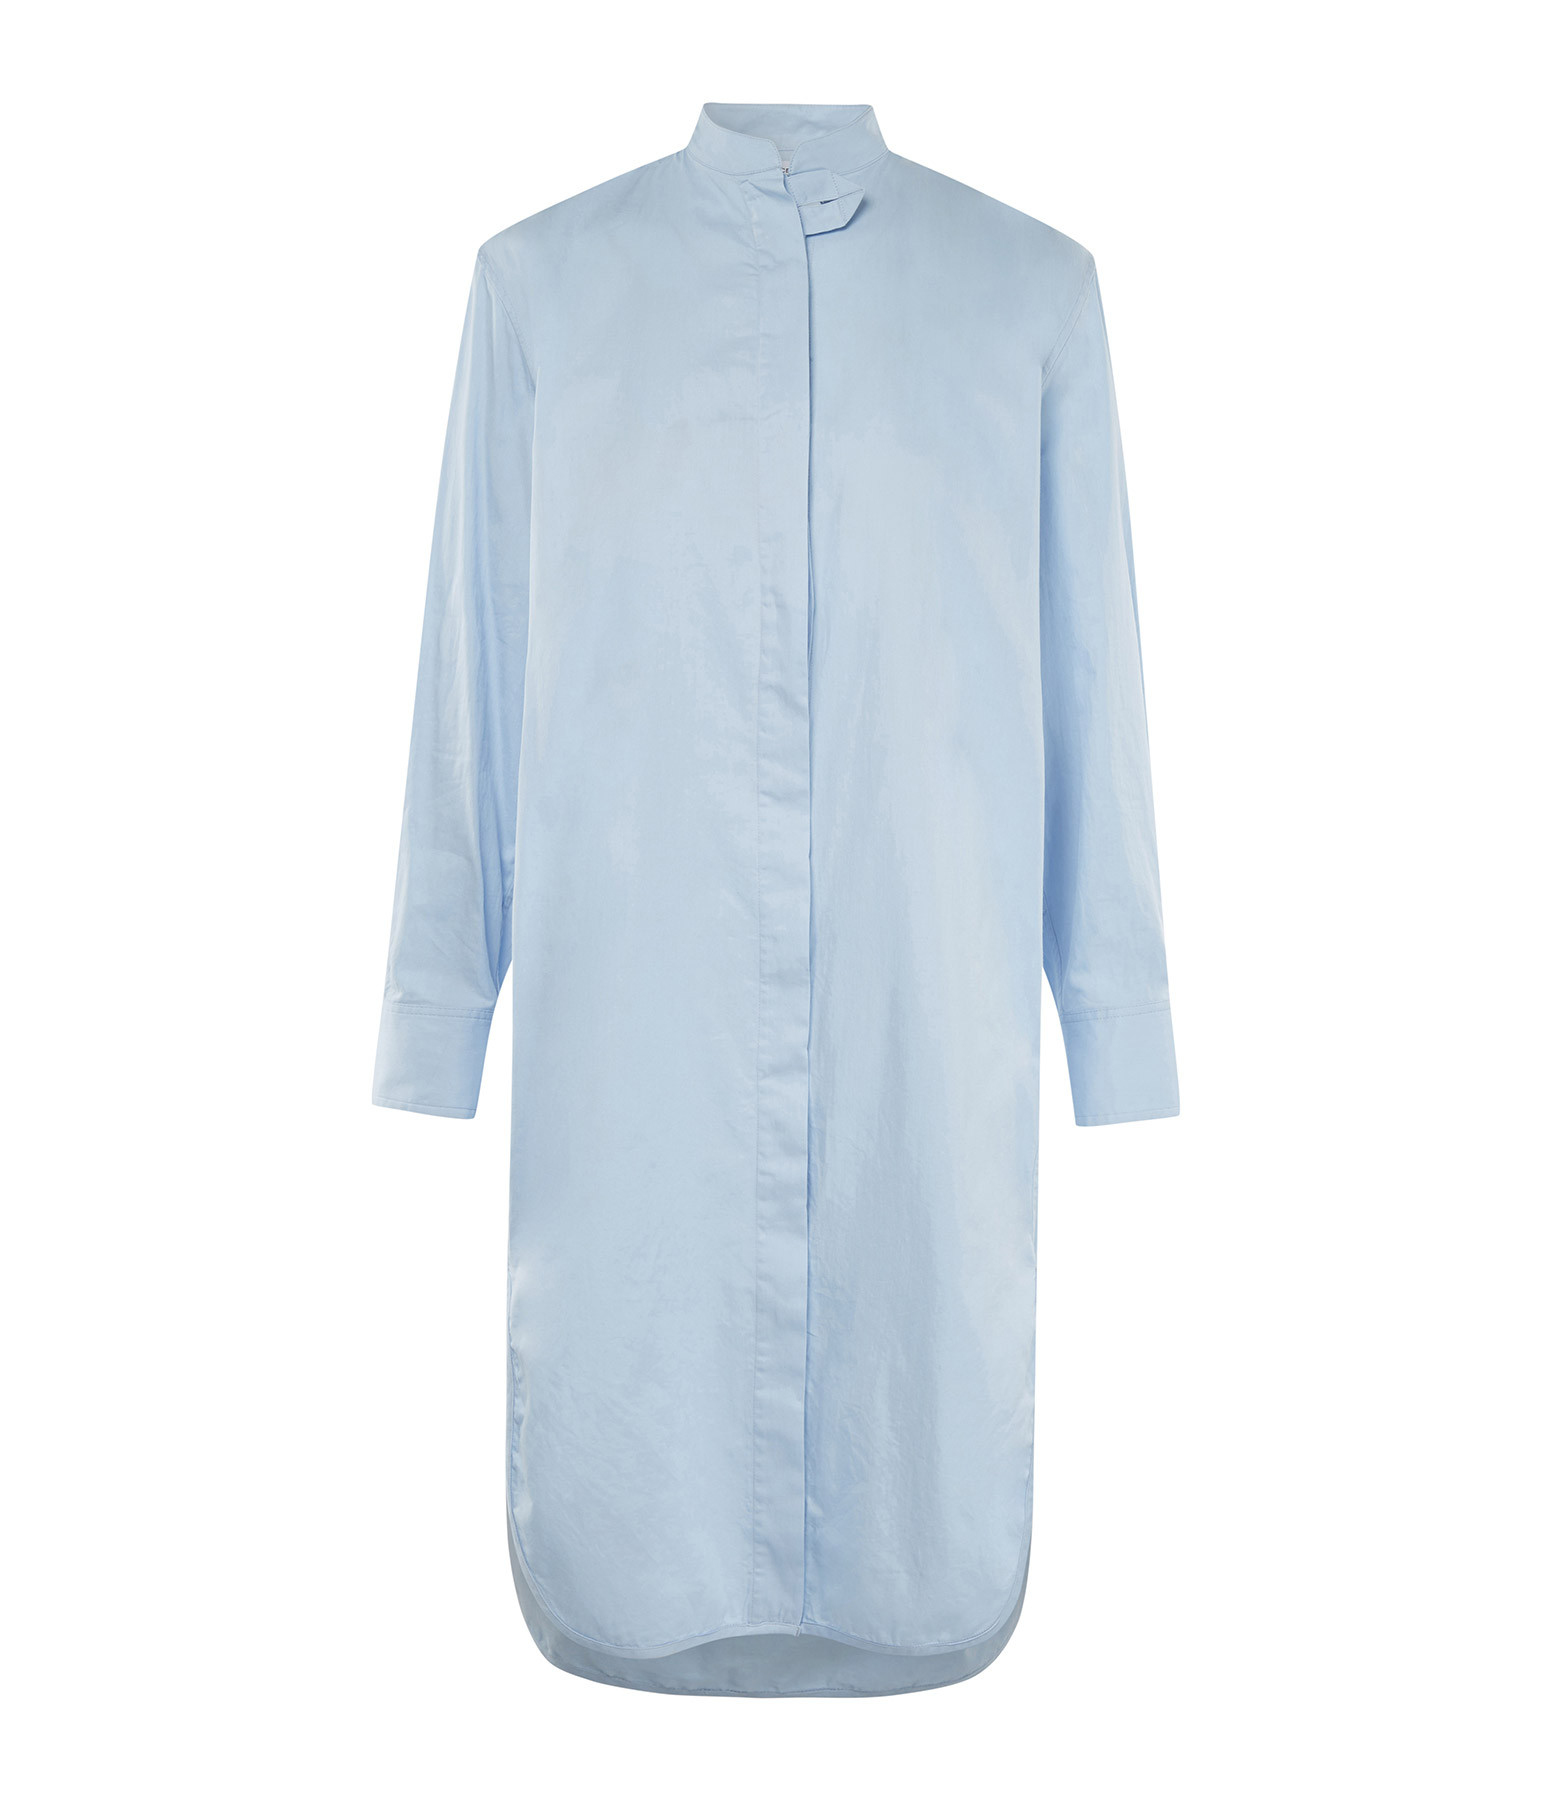 LAURENCE BRAS - Robe Picasso Coton Bleu